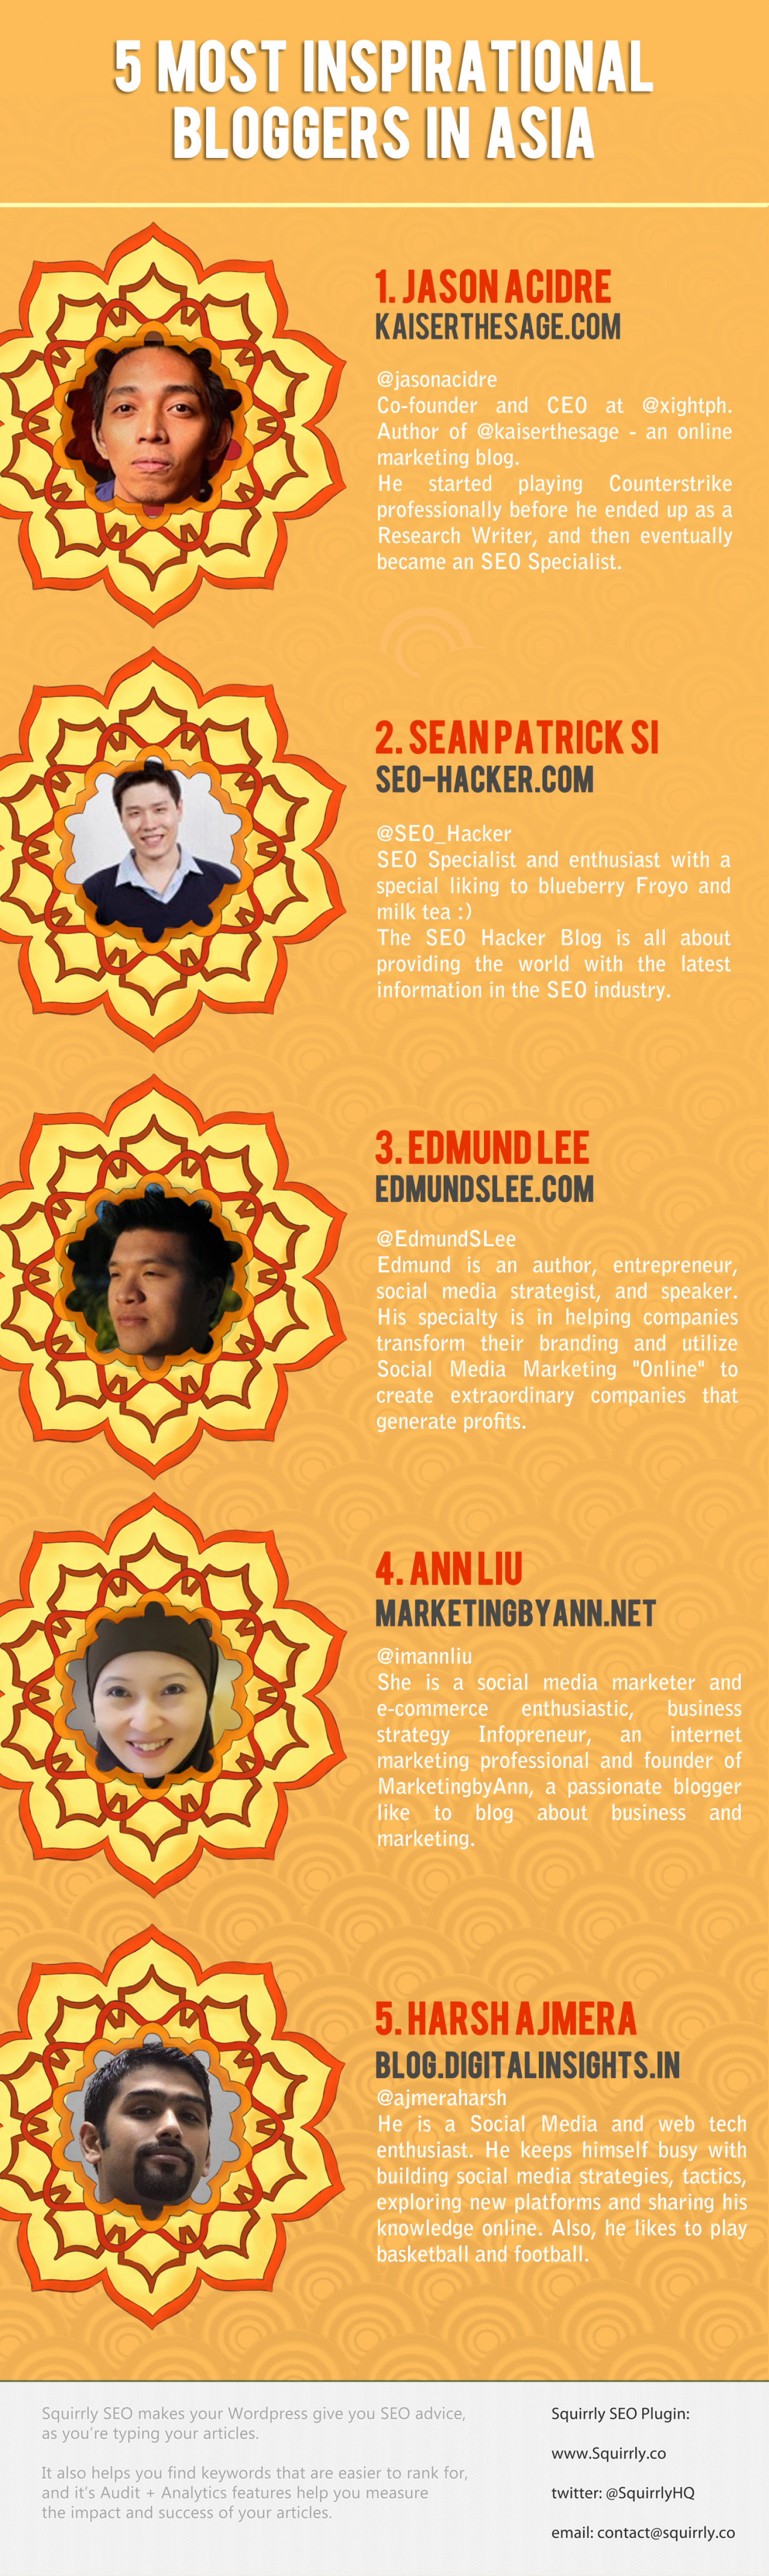 5 Most Inspirational Bloggers In Asia  Infographic